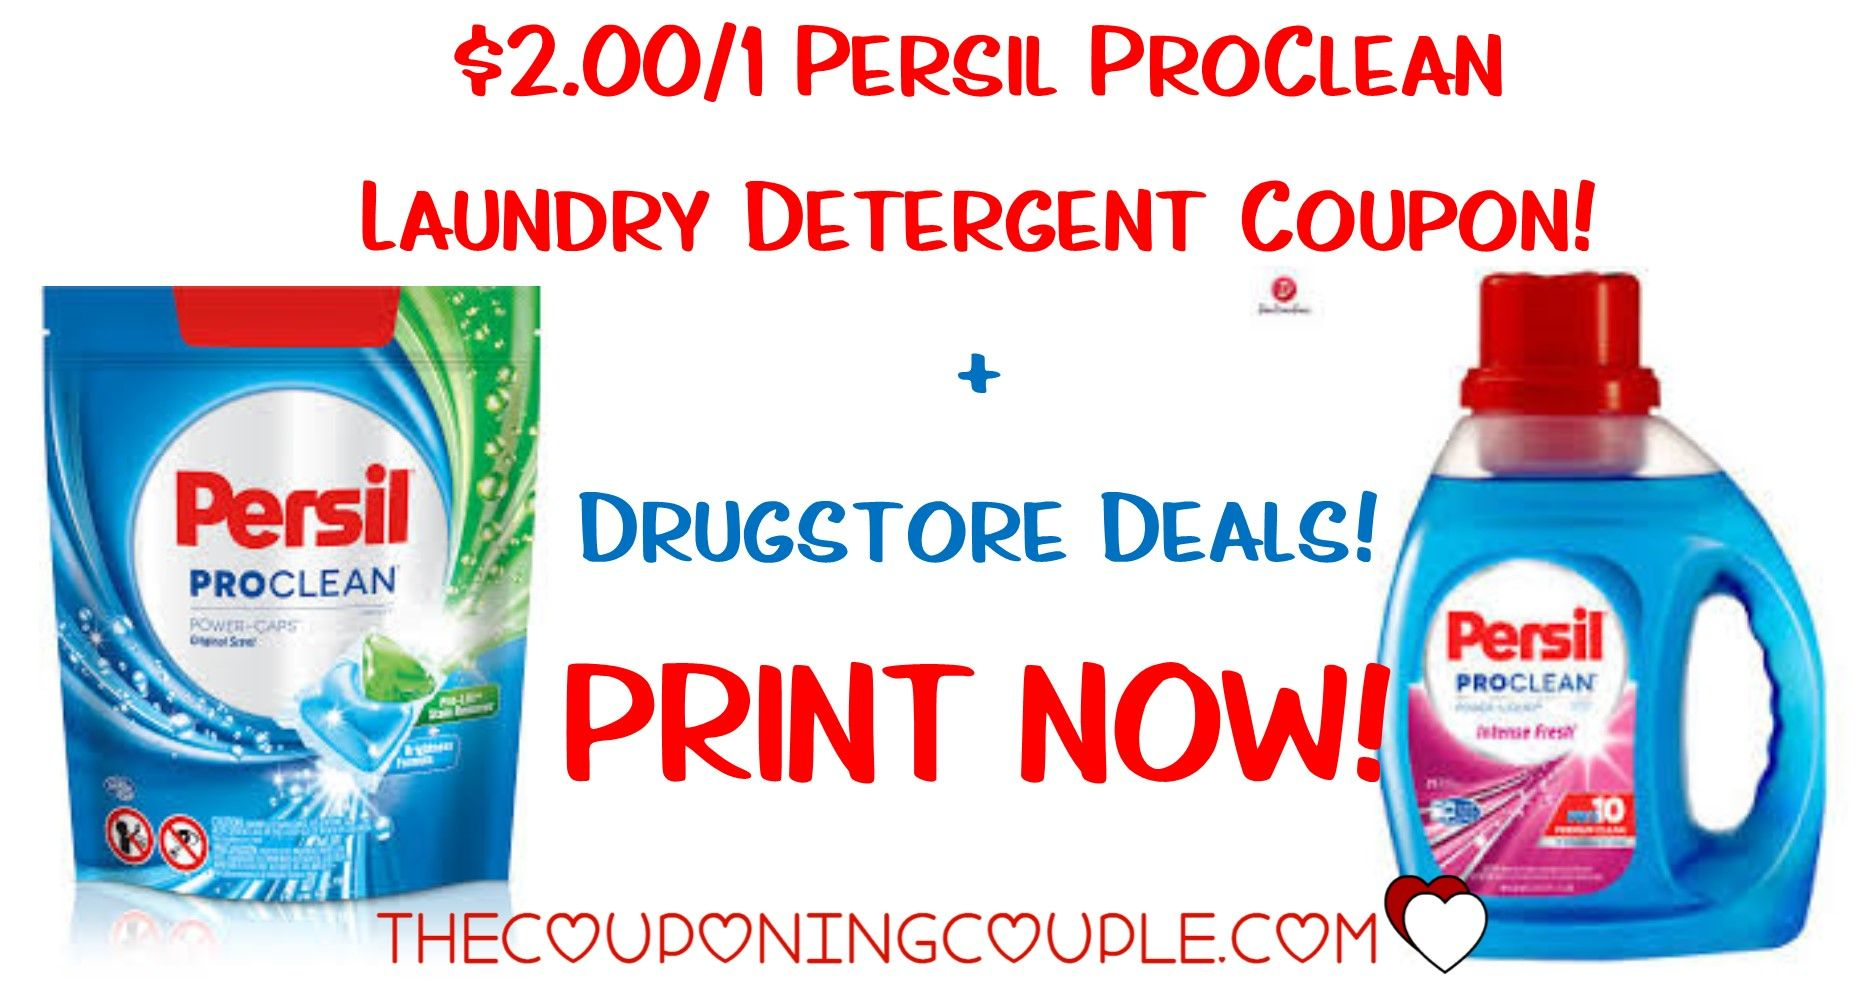 New 2 Persil Proclean Laundry Detergent Coupon Hot Deals At